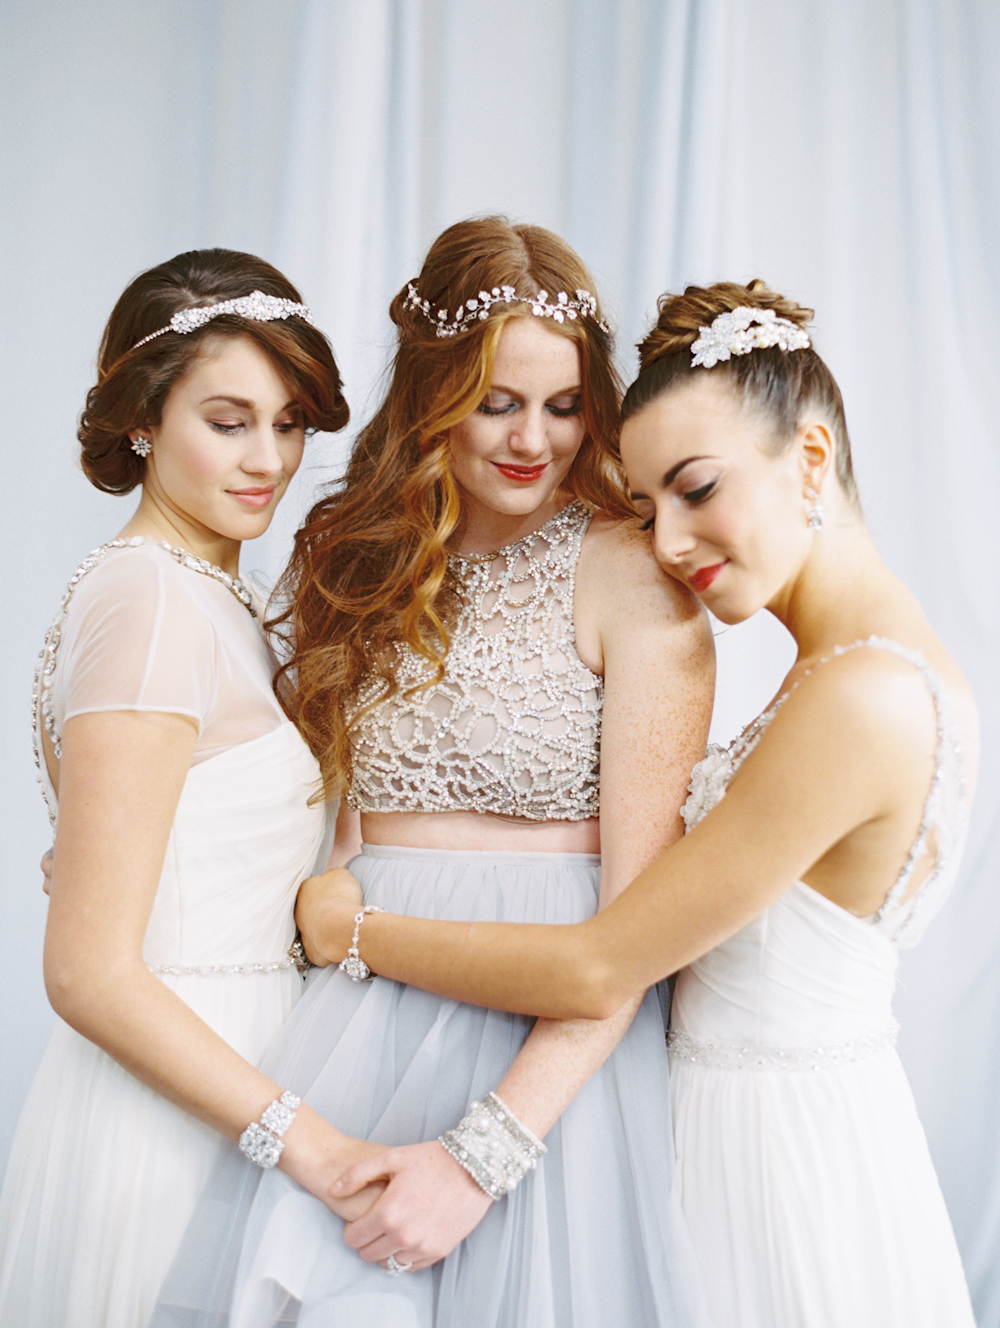 Mermaid Wedding Styled Shoot Bridal Party